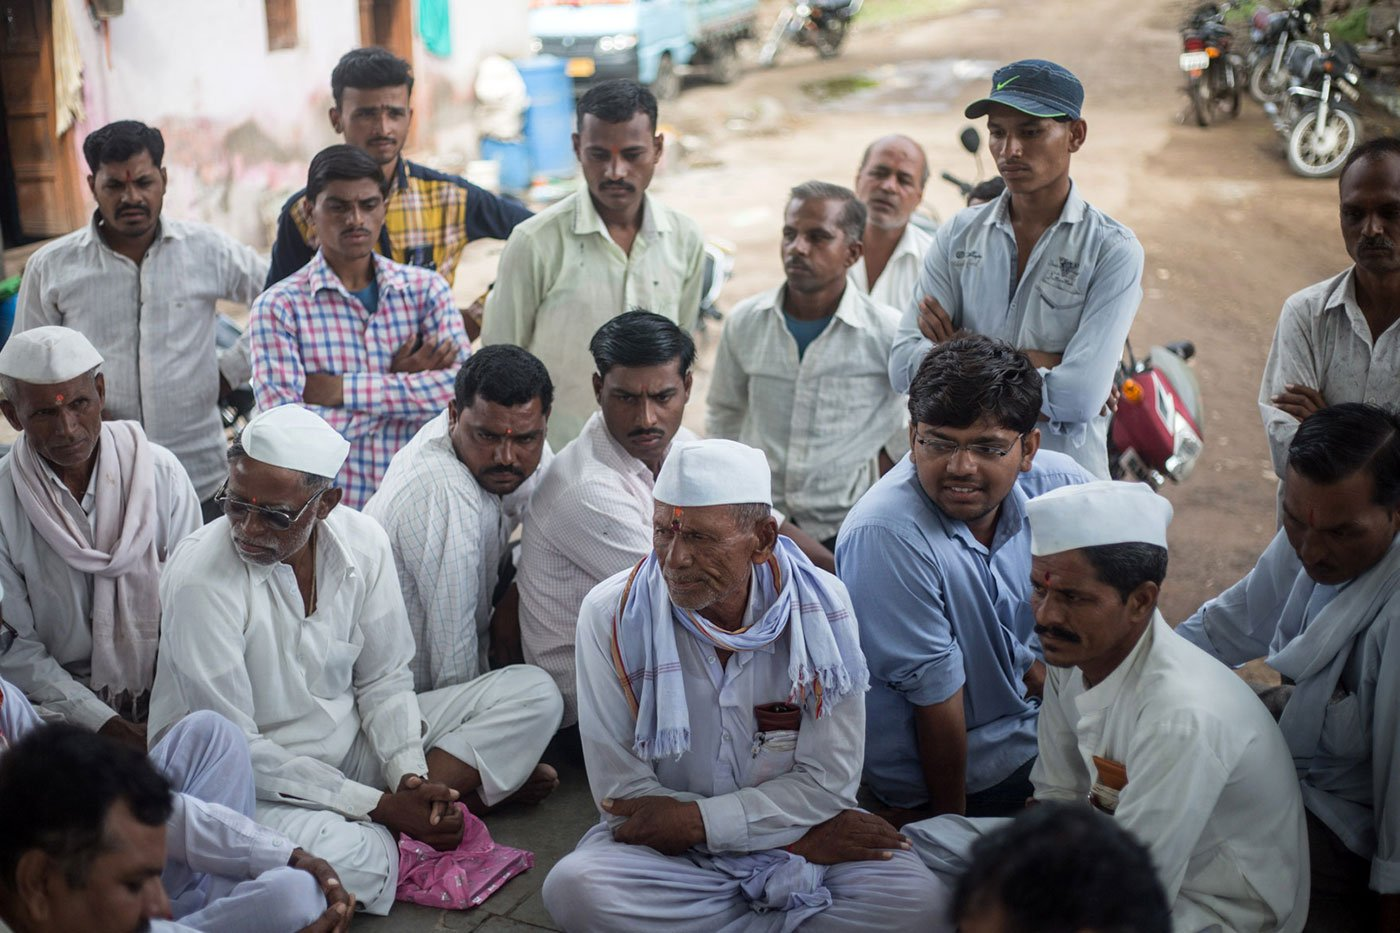 Farmers in Karajgaon